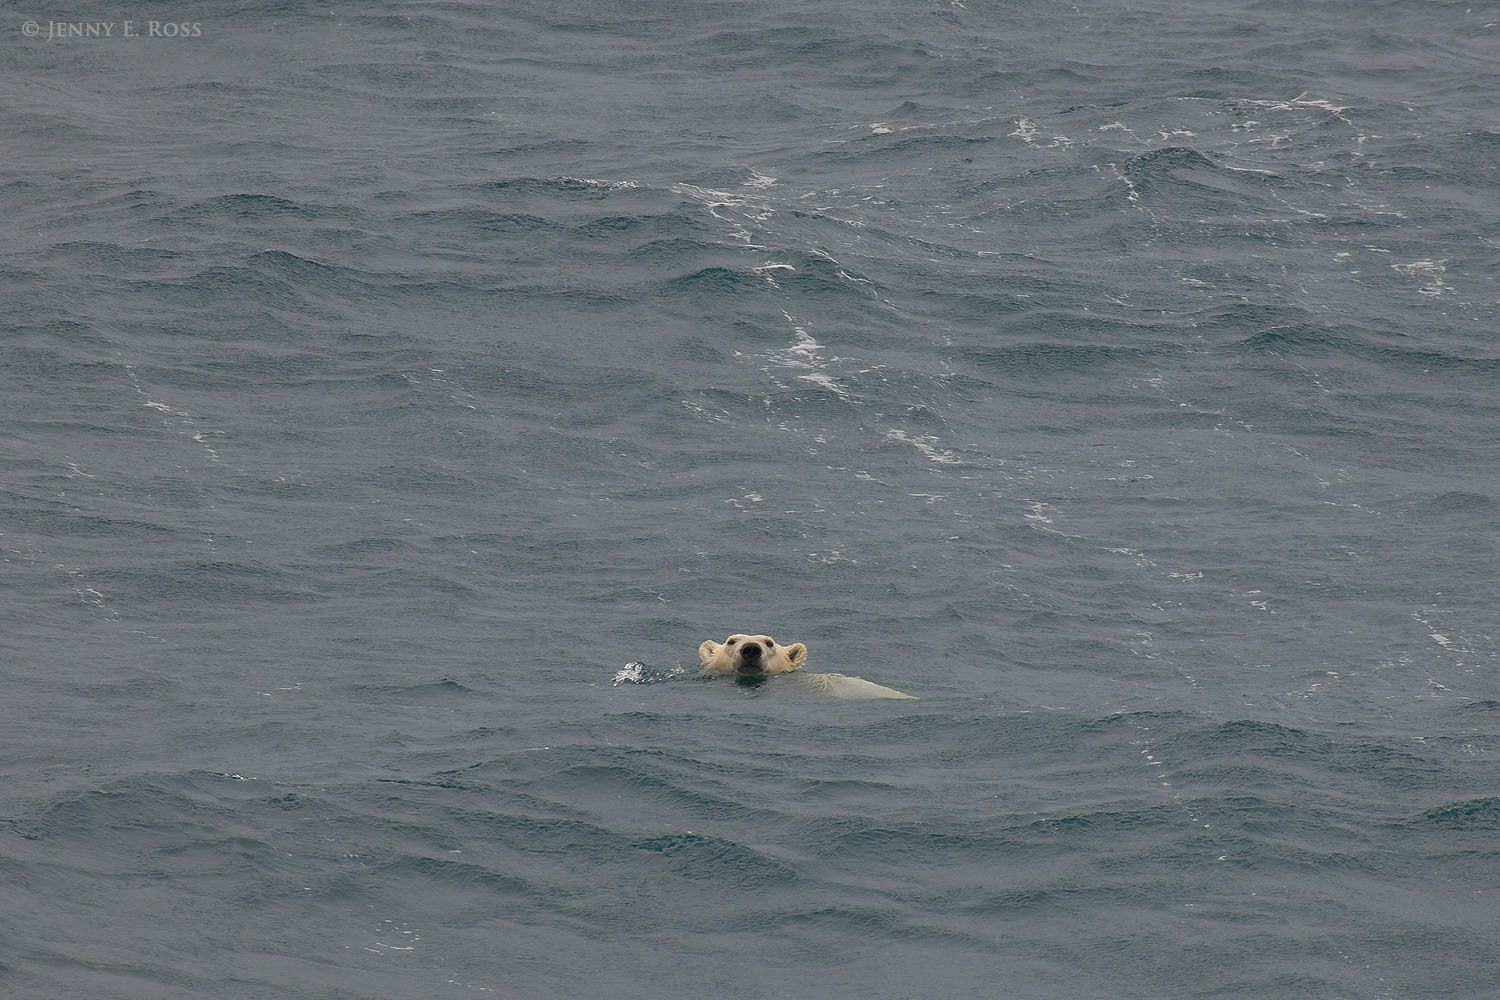 An adult female polar bear swimming in the Chukchi Sea, far from land and even farther from the nearest sea ice. The ice had melted and receded toward the central polar basin, hundreds of kilometers away.